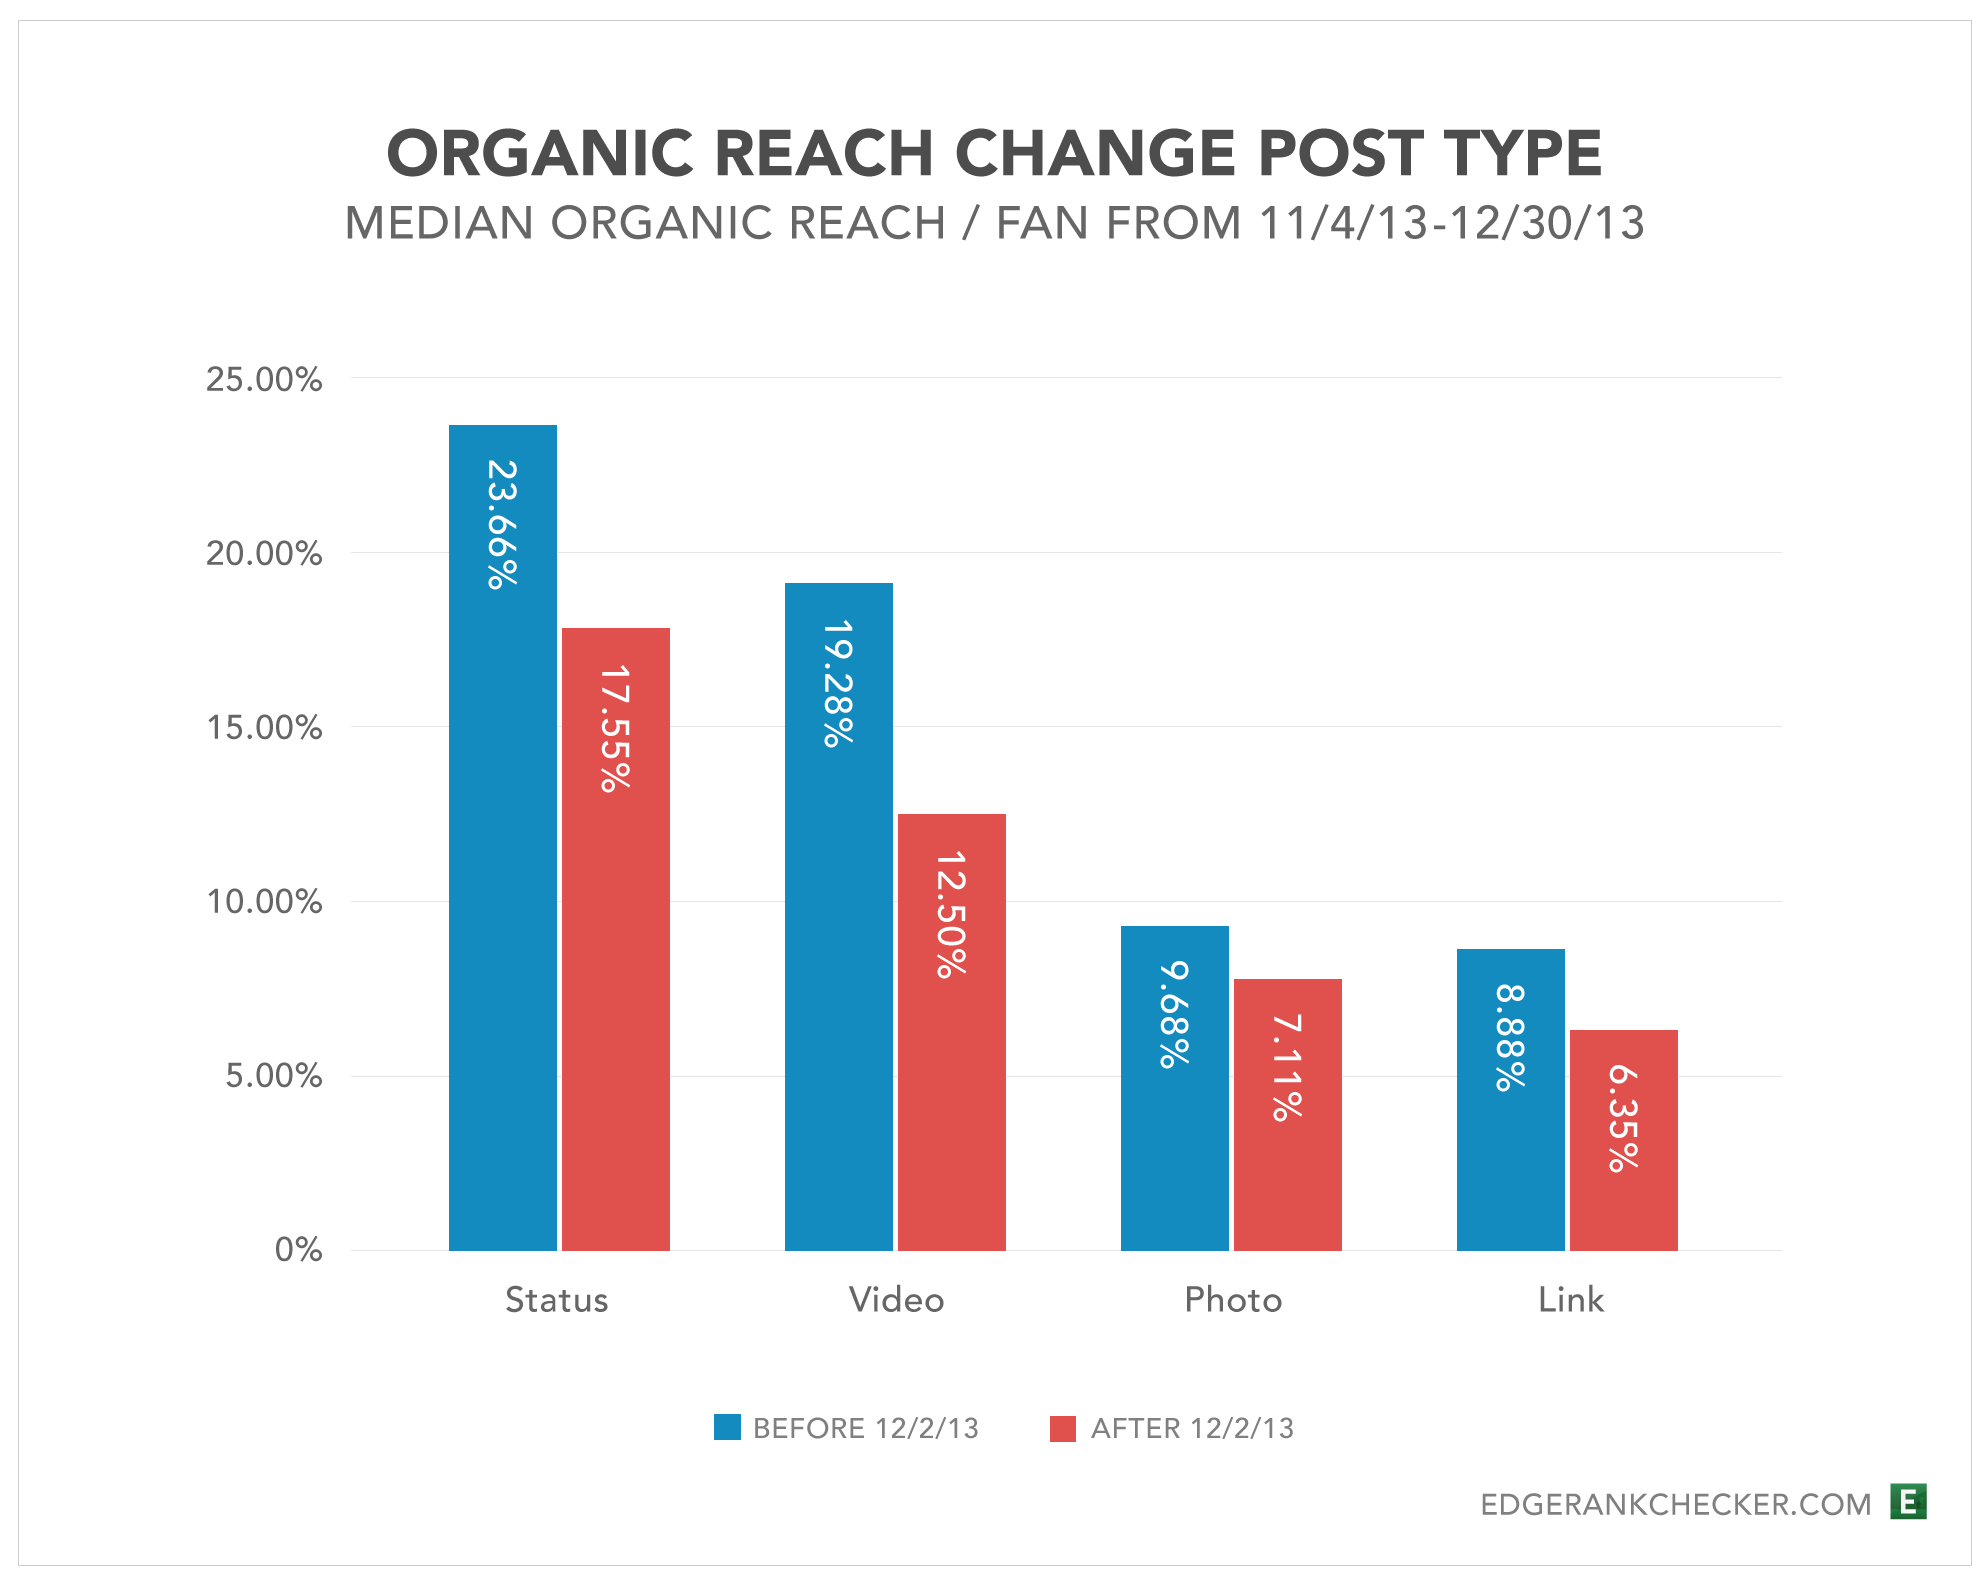 Organic-Reach-Change-Before-After-Dec2-Post-Type